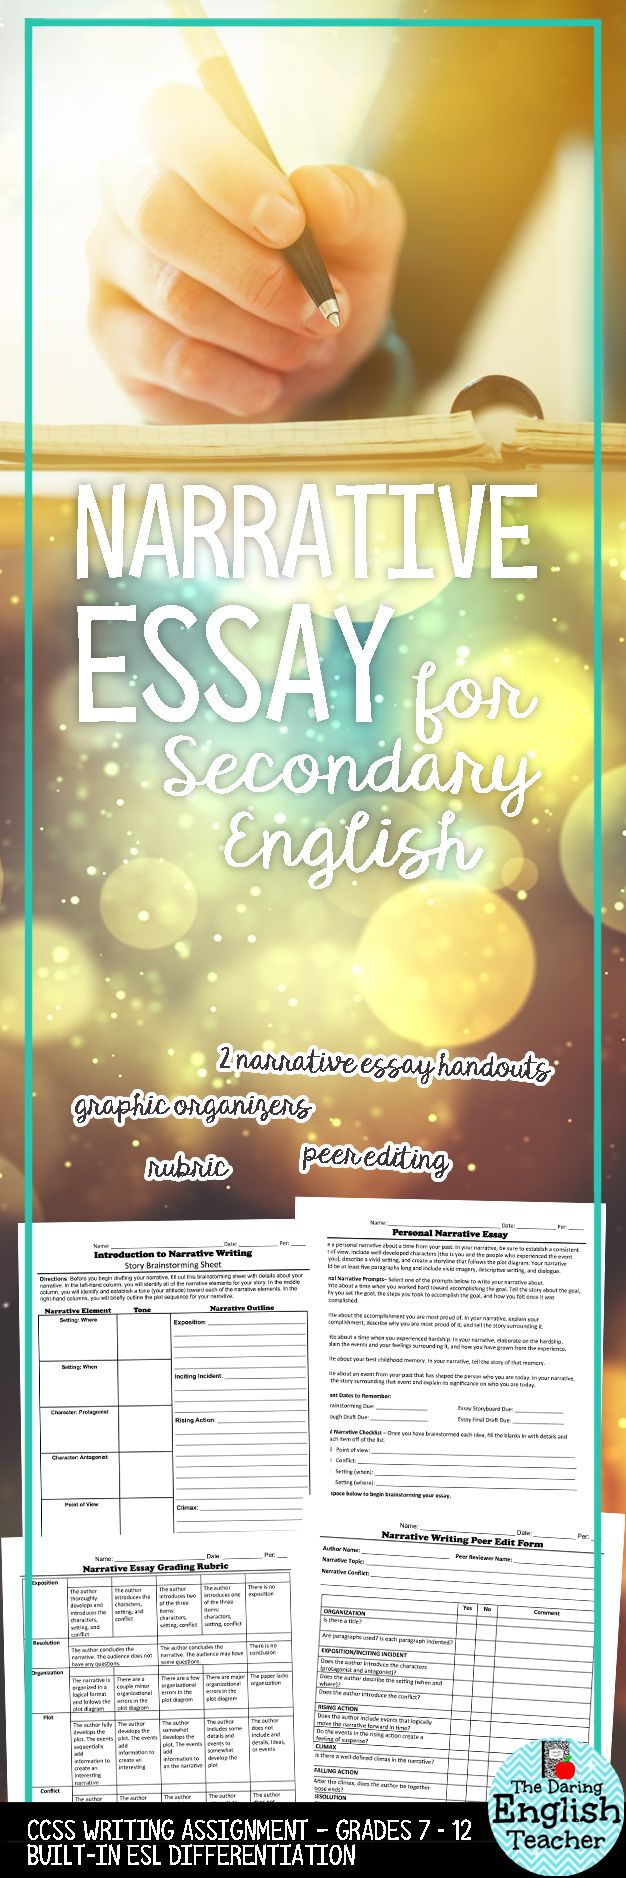 sample letter of interest for adjunct faculty%0A Engage your students in the narrative writing process with this complete  narrative essay assignment  This